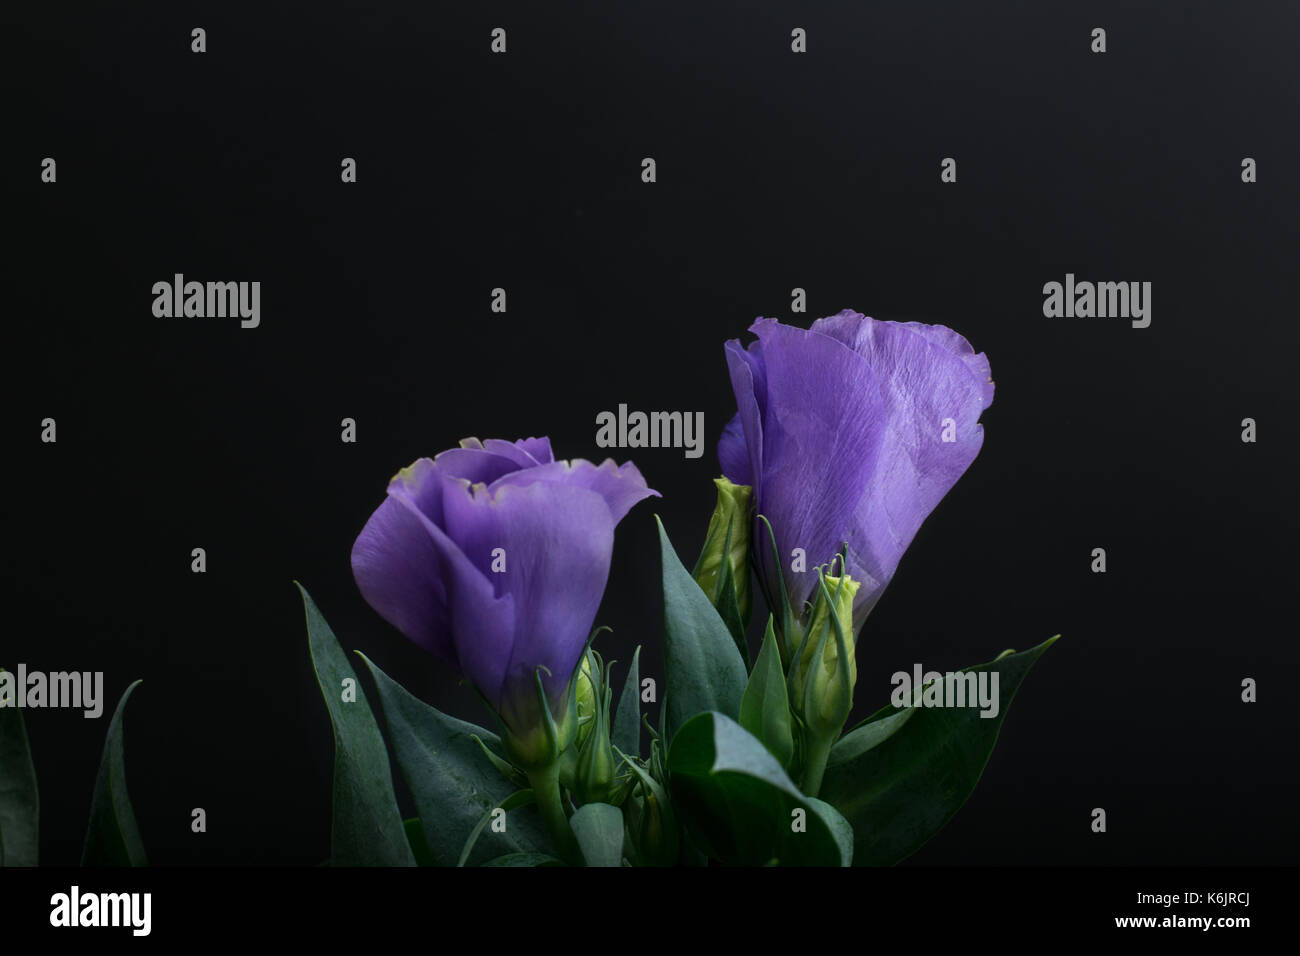 eustoma flowers - Stock Image